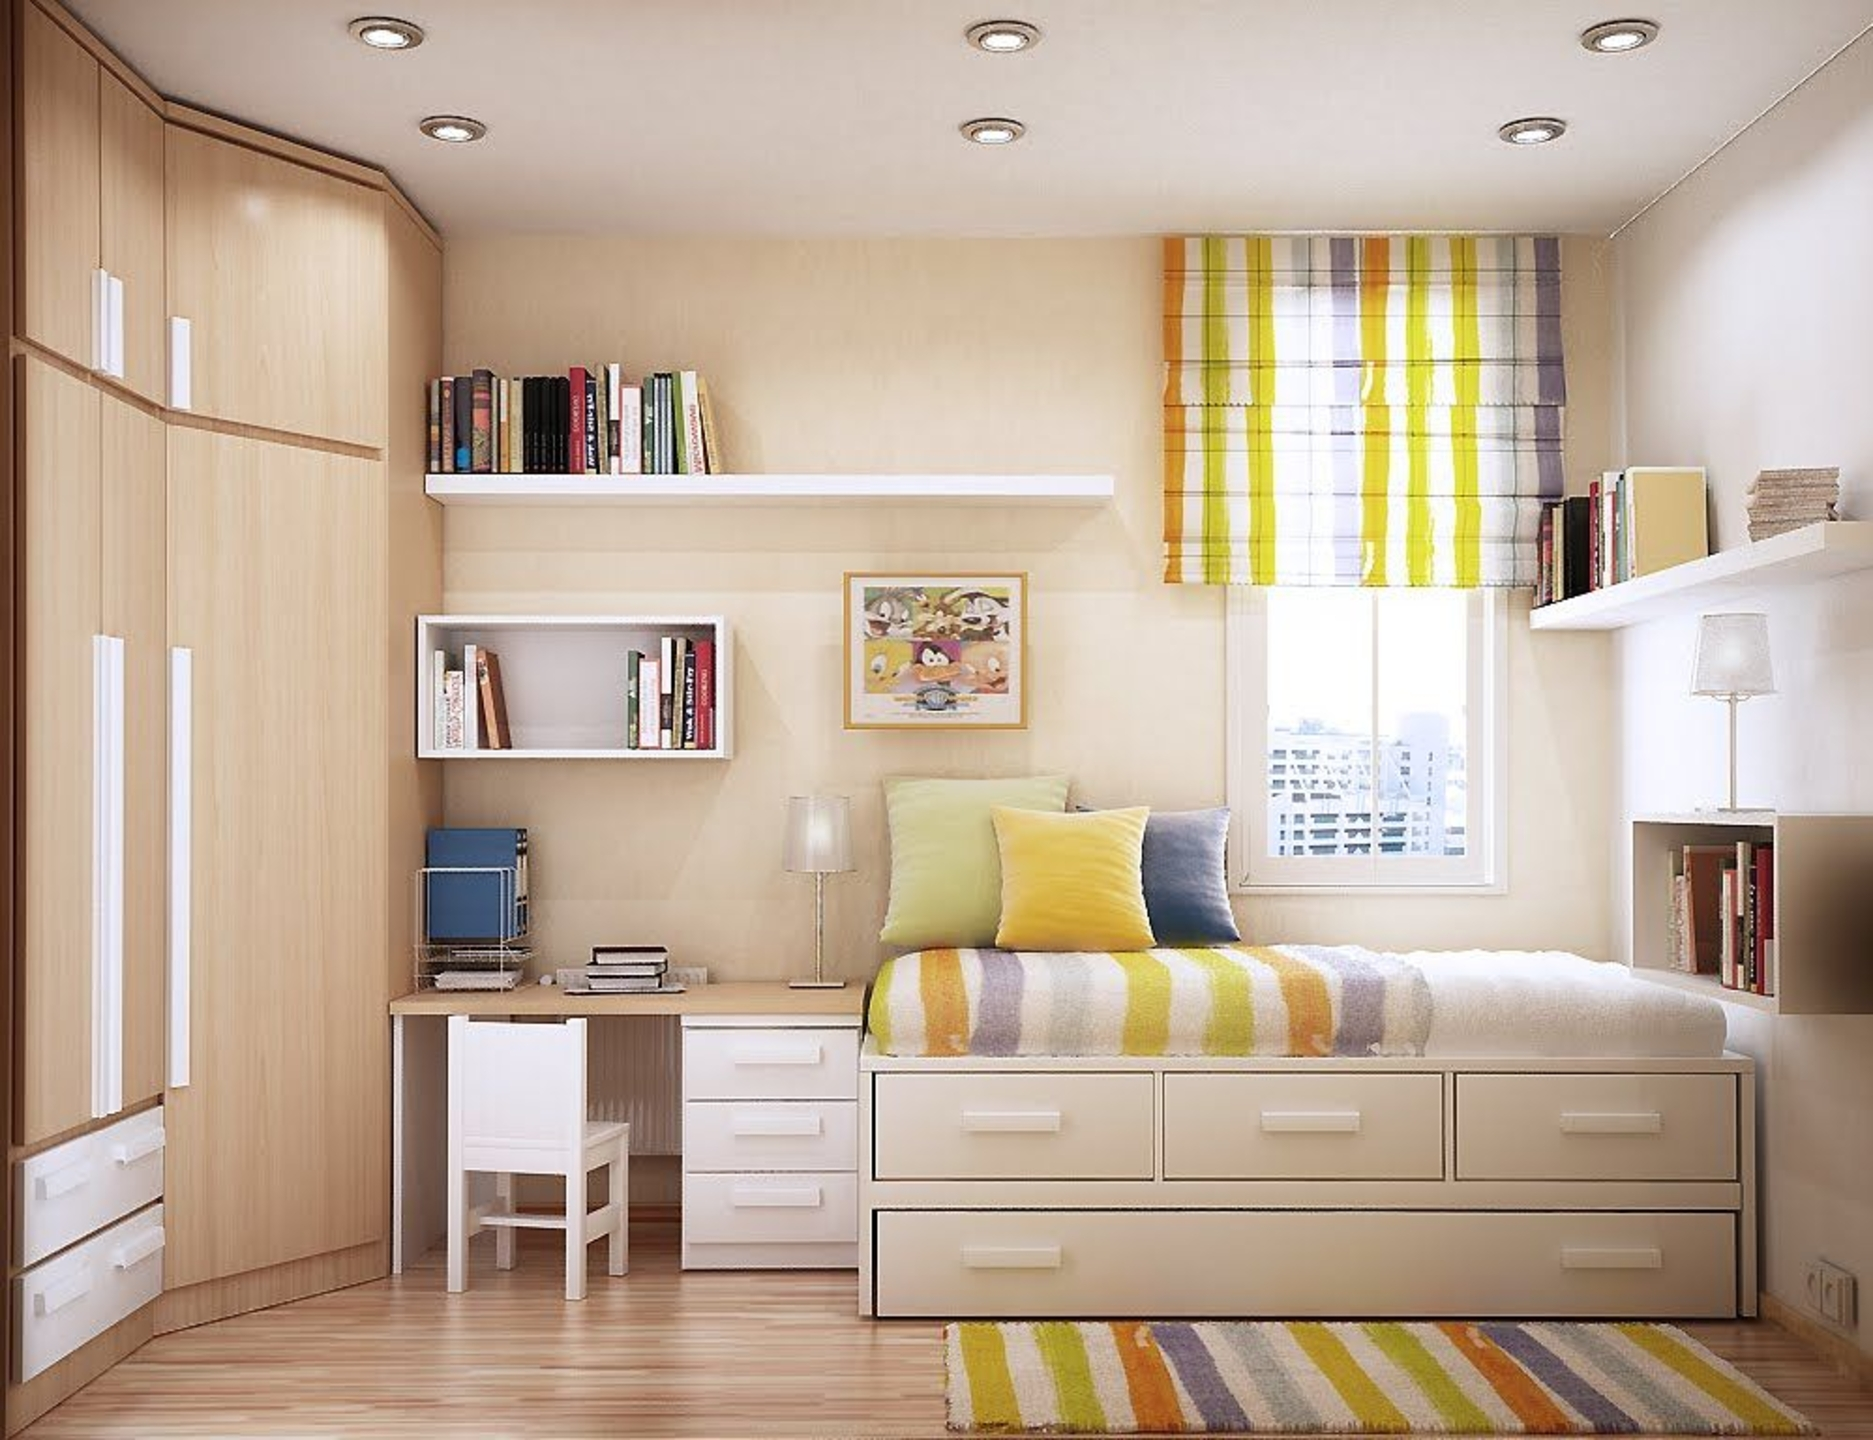 bedroom-small-ikea-teenage-boy-ideas-with-also-save-space-in-room-decoration-for-and-photo-.jpg